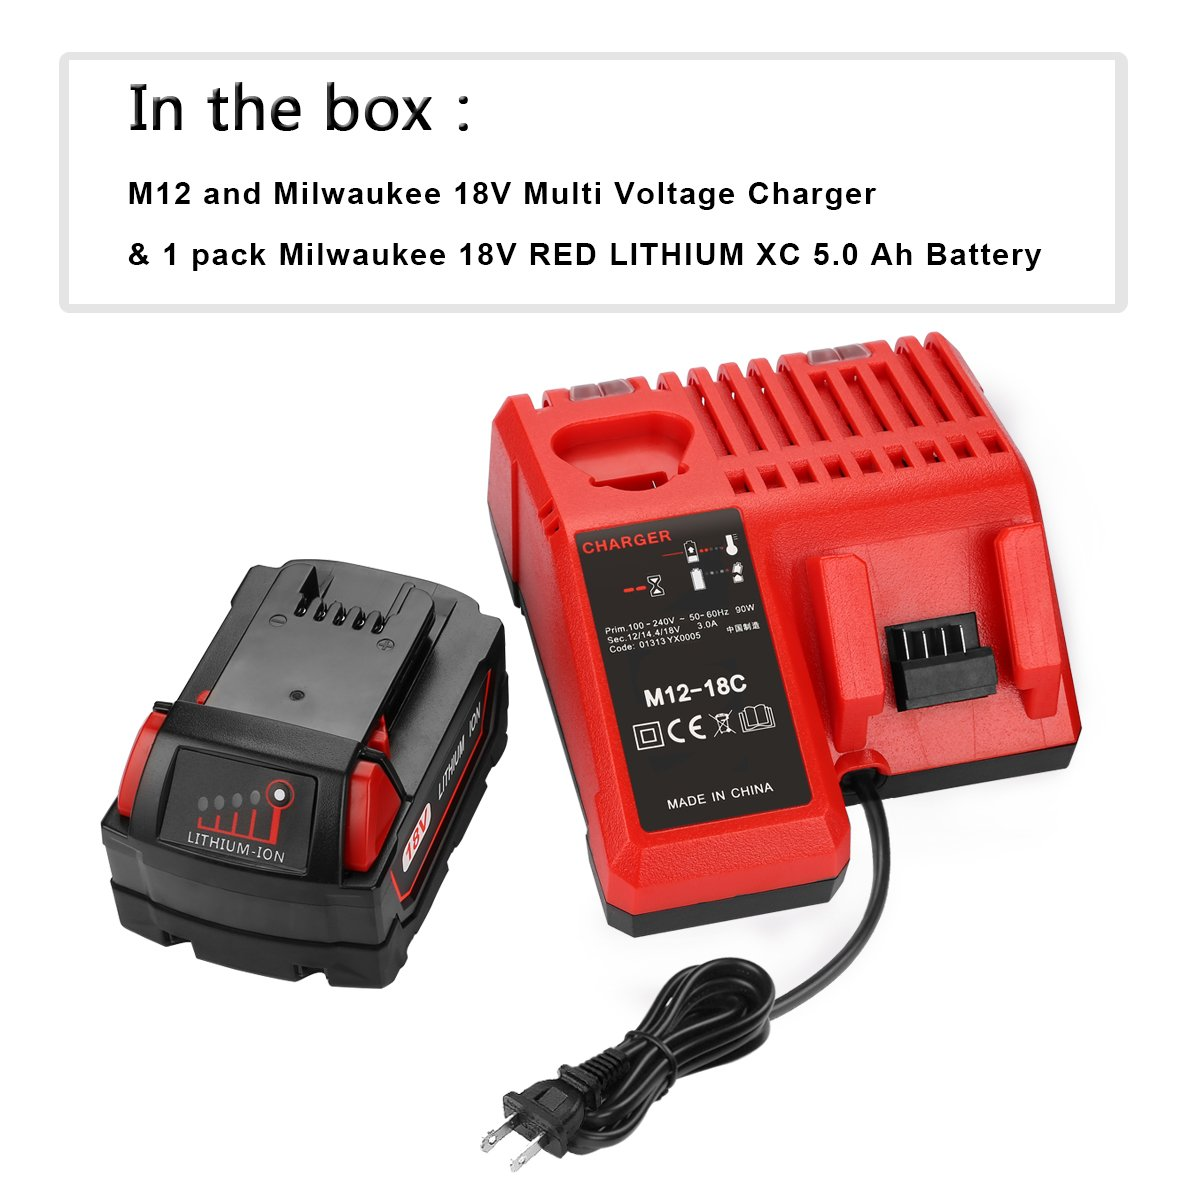 antrobut 18v 5000mah replacement for milwaukee 18volt red lithium xc 5 0 ah battery 1 pack milwaukee 12v 18v xc starter kit lithium ion battery rh amazon com